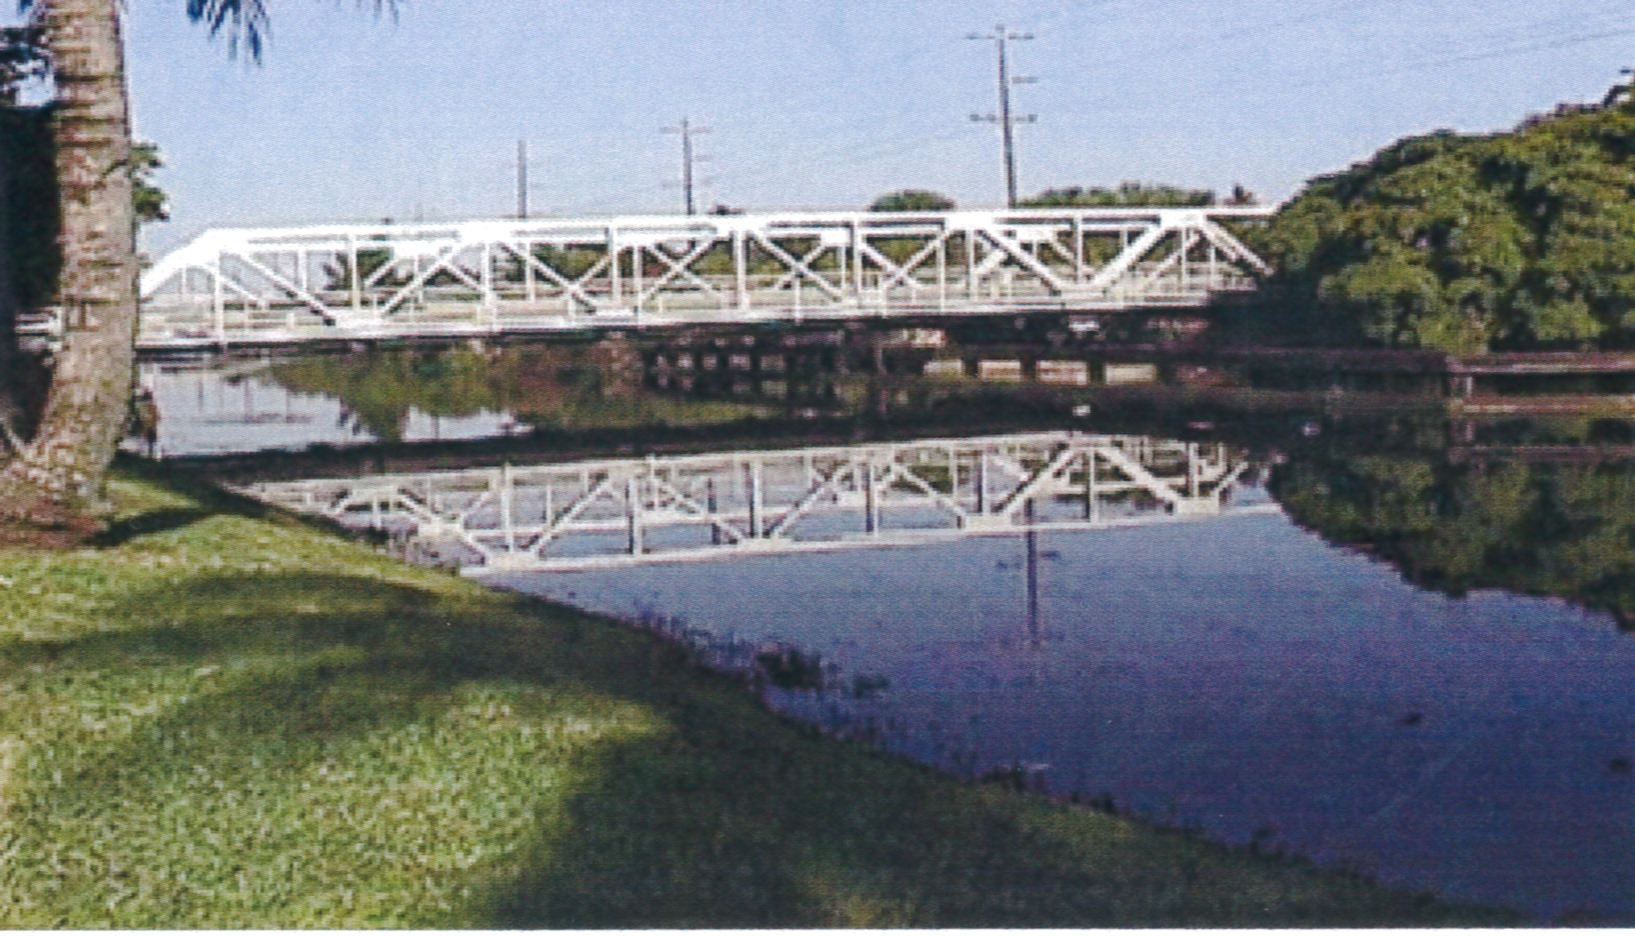 The Warren Pony Swing Bridge crossing over the Miami Canal from Hialeah to Miami Springs was built in 1924